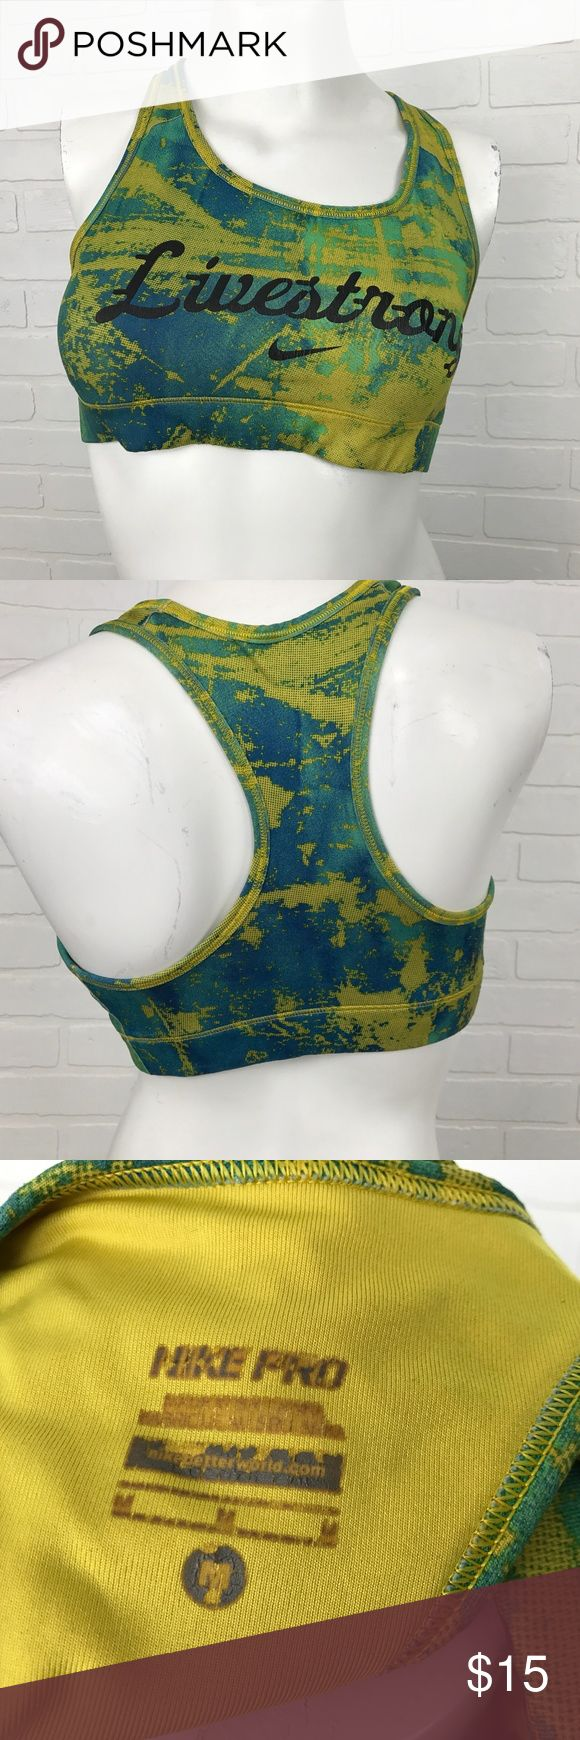 NIKE Pro Livestrong Workout Athletic Bra Static BRAND                    :Nike Pro					 SIZE	                 :Women's Medium STYLE	                 :Athletic Bra COLOR	                 :Yellow - Green - Blue MATERIAL              :Material tag cut off		 Condition               :Gently worn - Inside Screenprint faded	 Inventory                :MQ115 B5 Nike Pro Swim